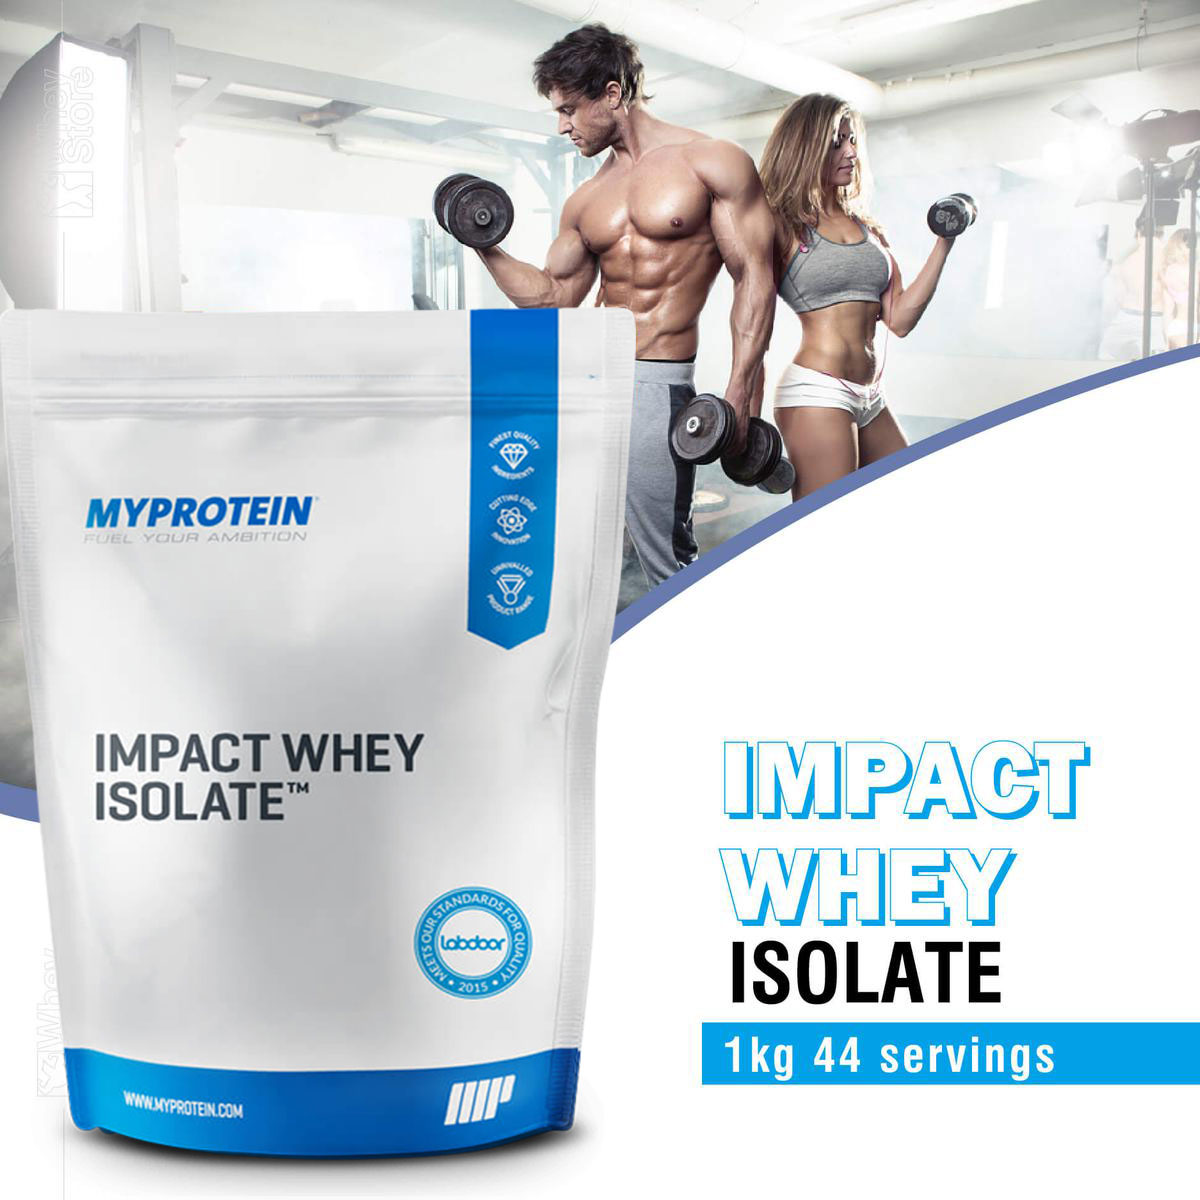 Impact Whey Isolate 1Kg (40 servings) - Sữa Tăng Cơ Giảm Mỡ